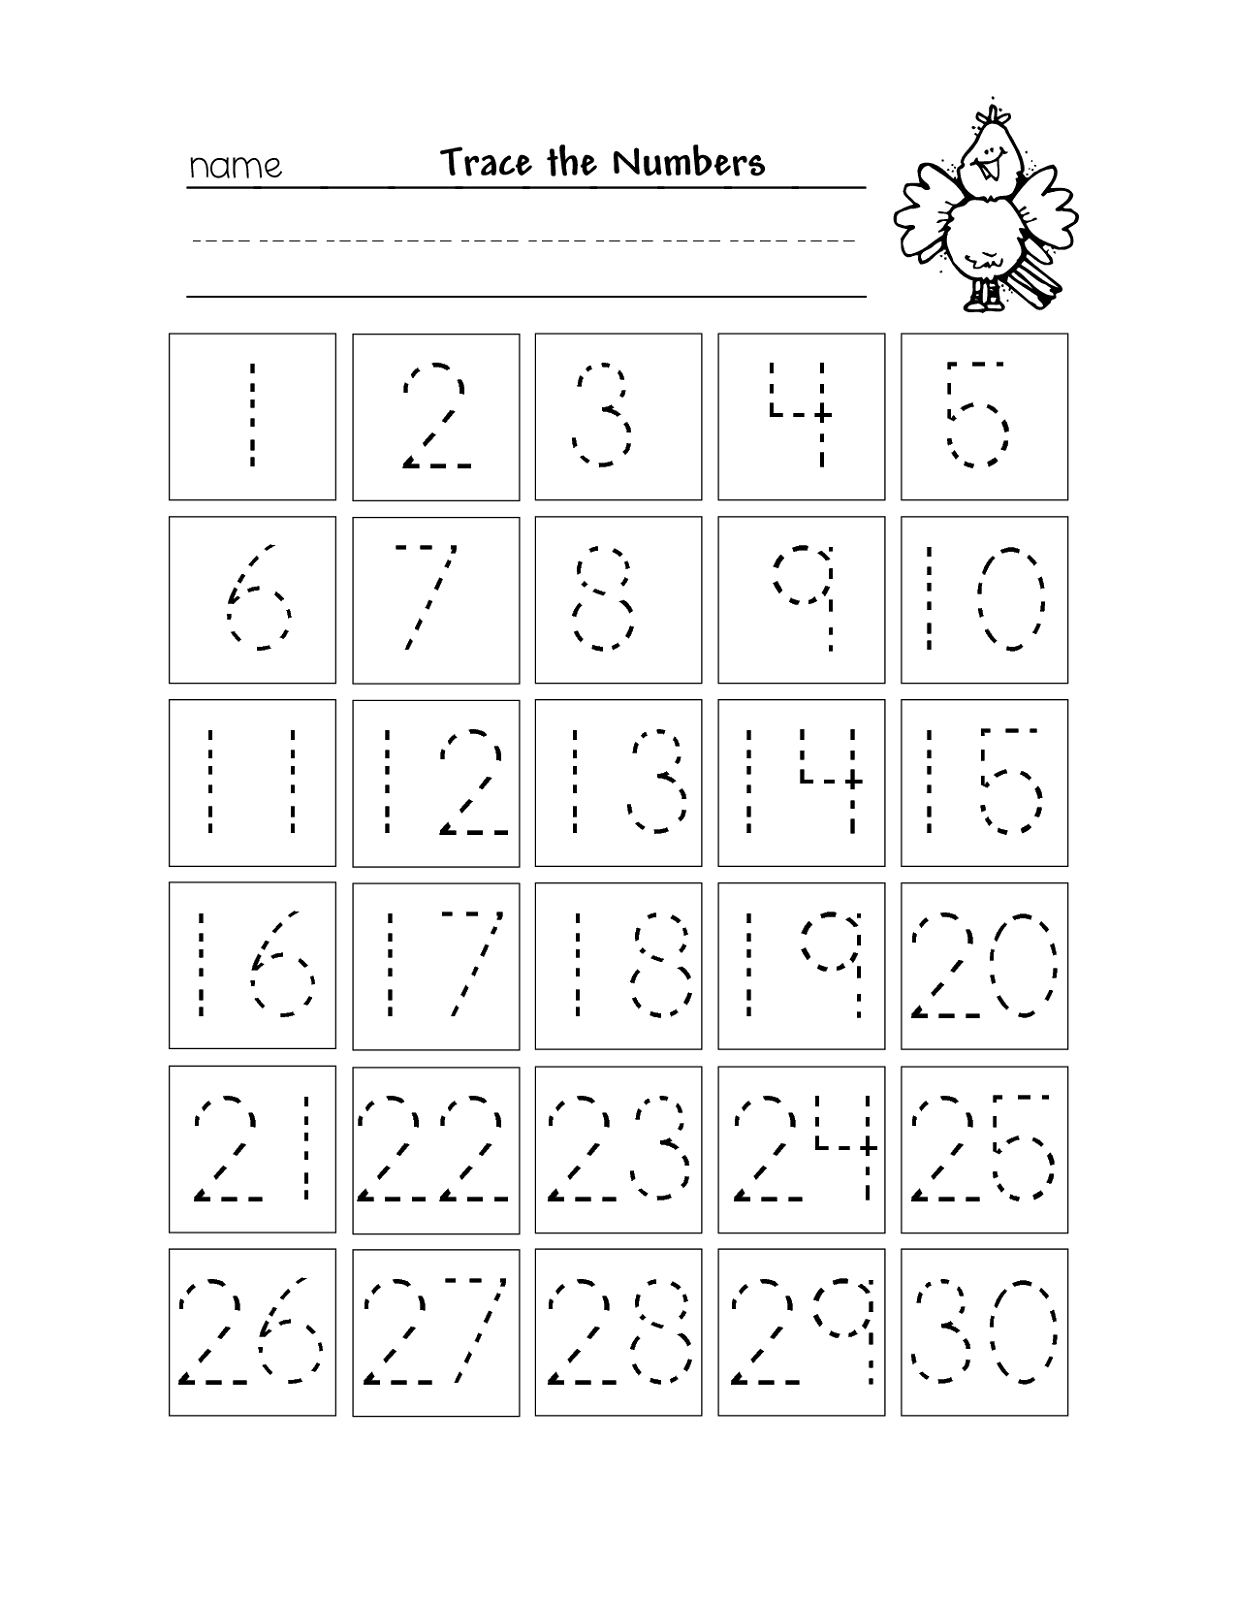 Free Printable Number Chart 1-30 | Kinder | Number Tracing - Free Printable Number Flashcards 1 30